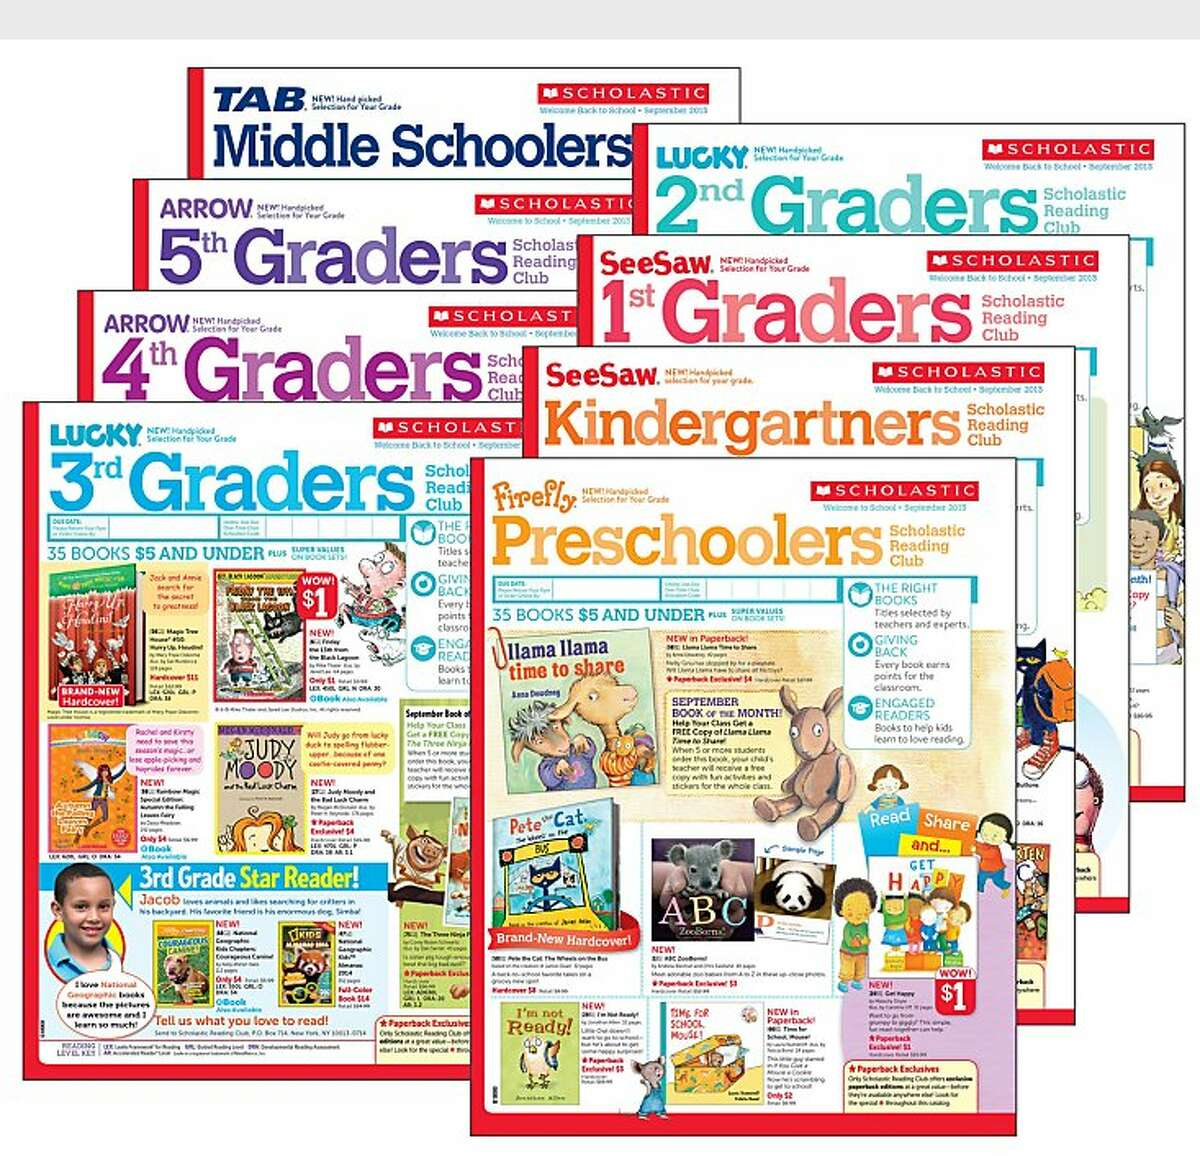 The new grade-specific Scholastic Reading Club flyers offers books with varied reading levels found in each grade to help Pre-K to Middle School students find just right books and prepare to meet the demands of the Common Core State Standards. (PRNewsFoto/Scholastic)